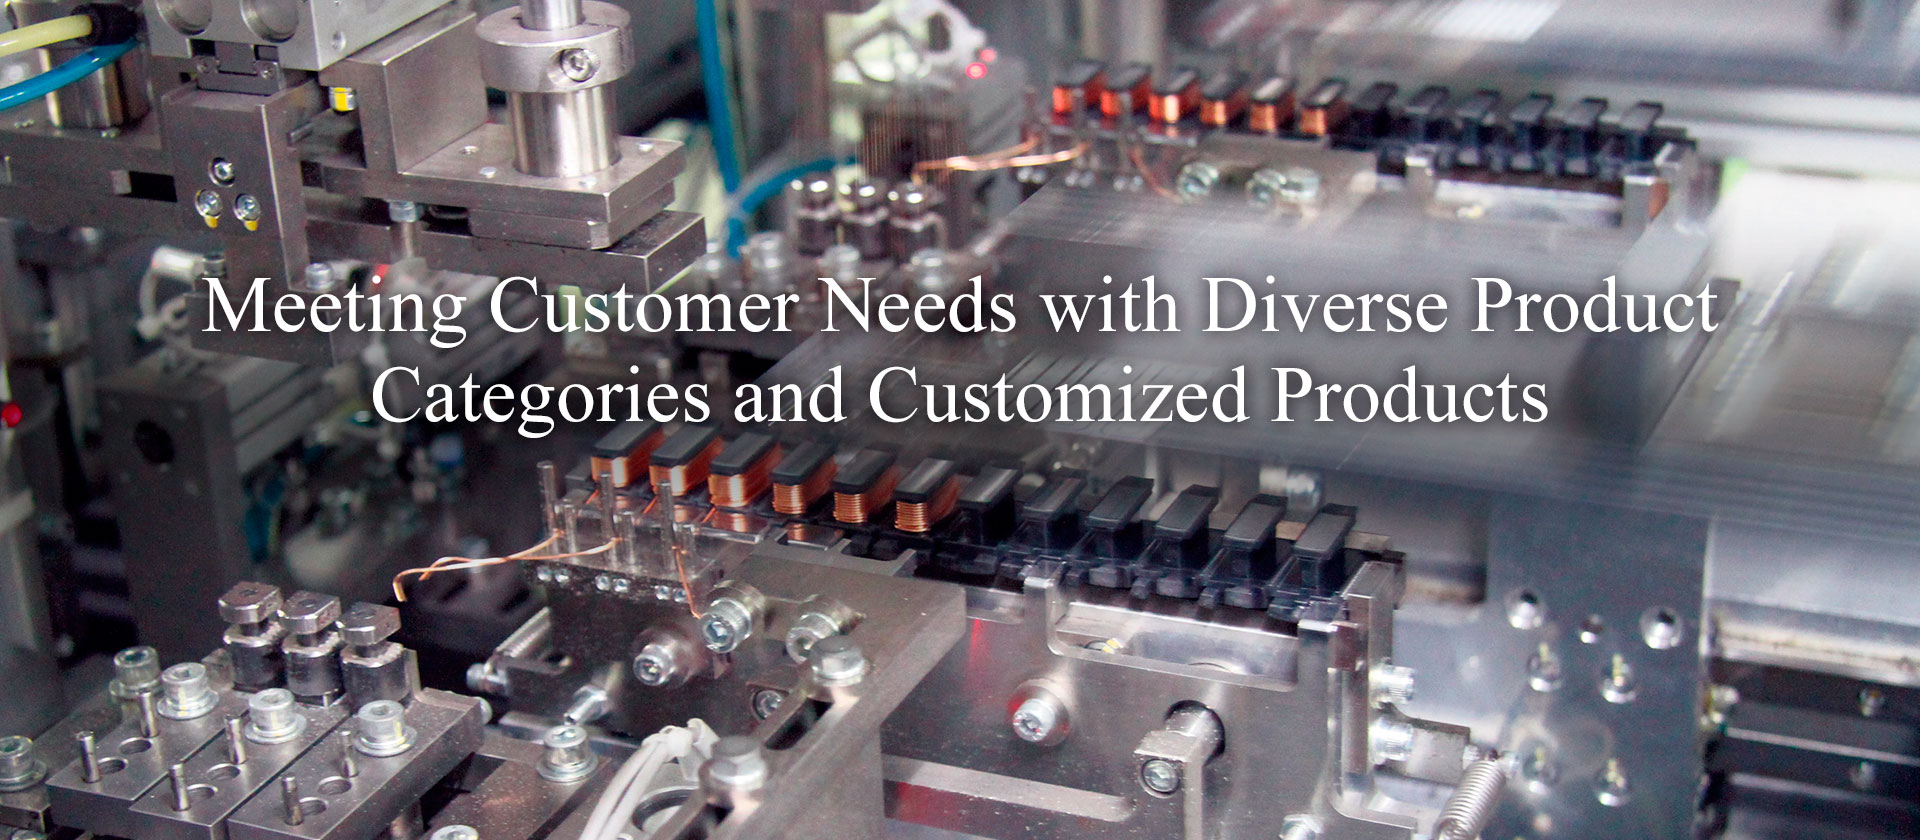 Meeting Customer Needs with Diverse Product Categories and Customized Products